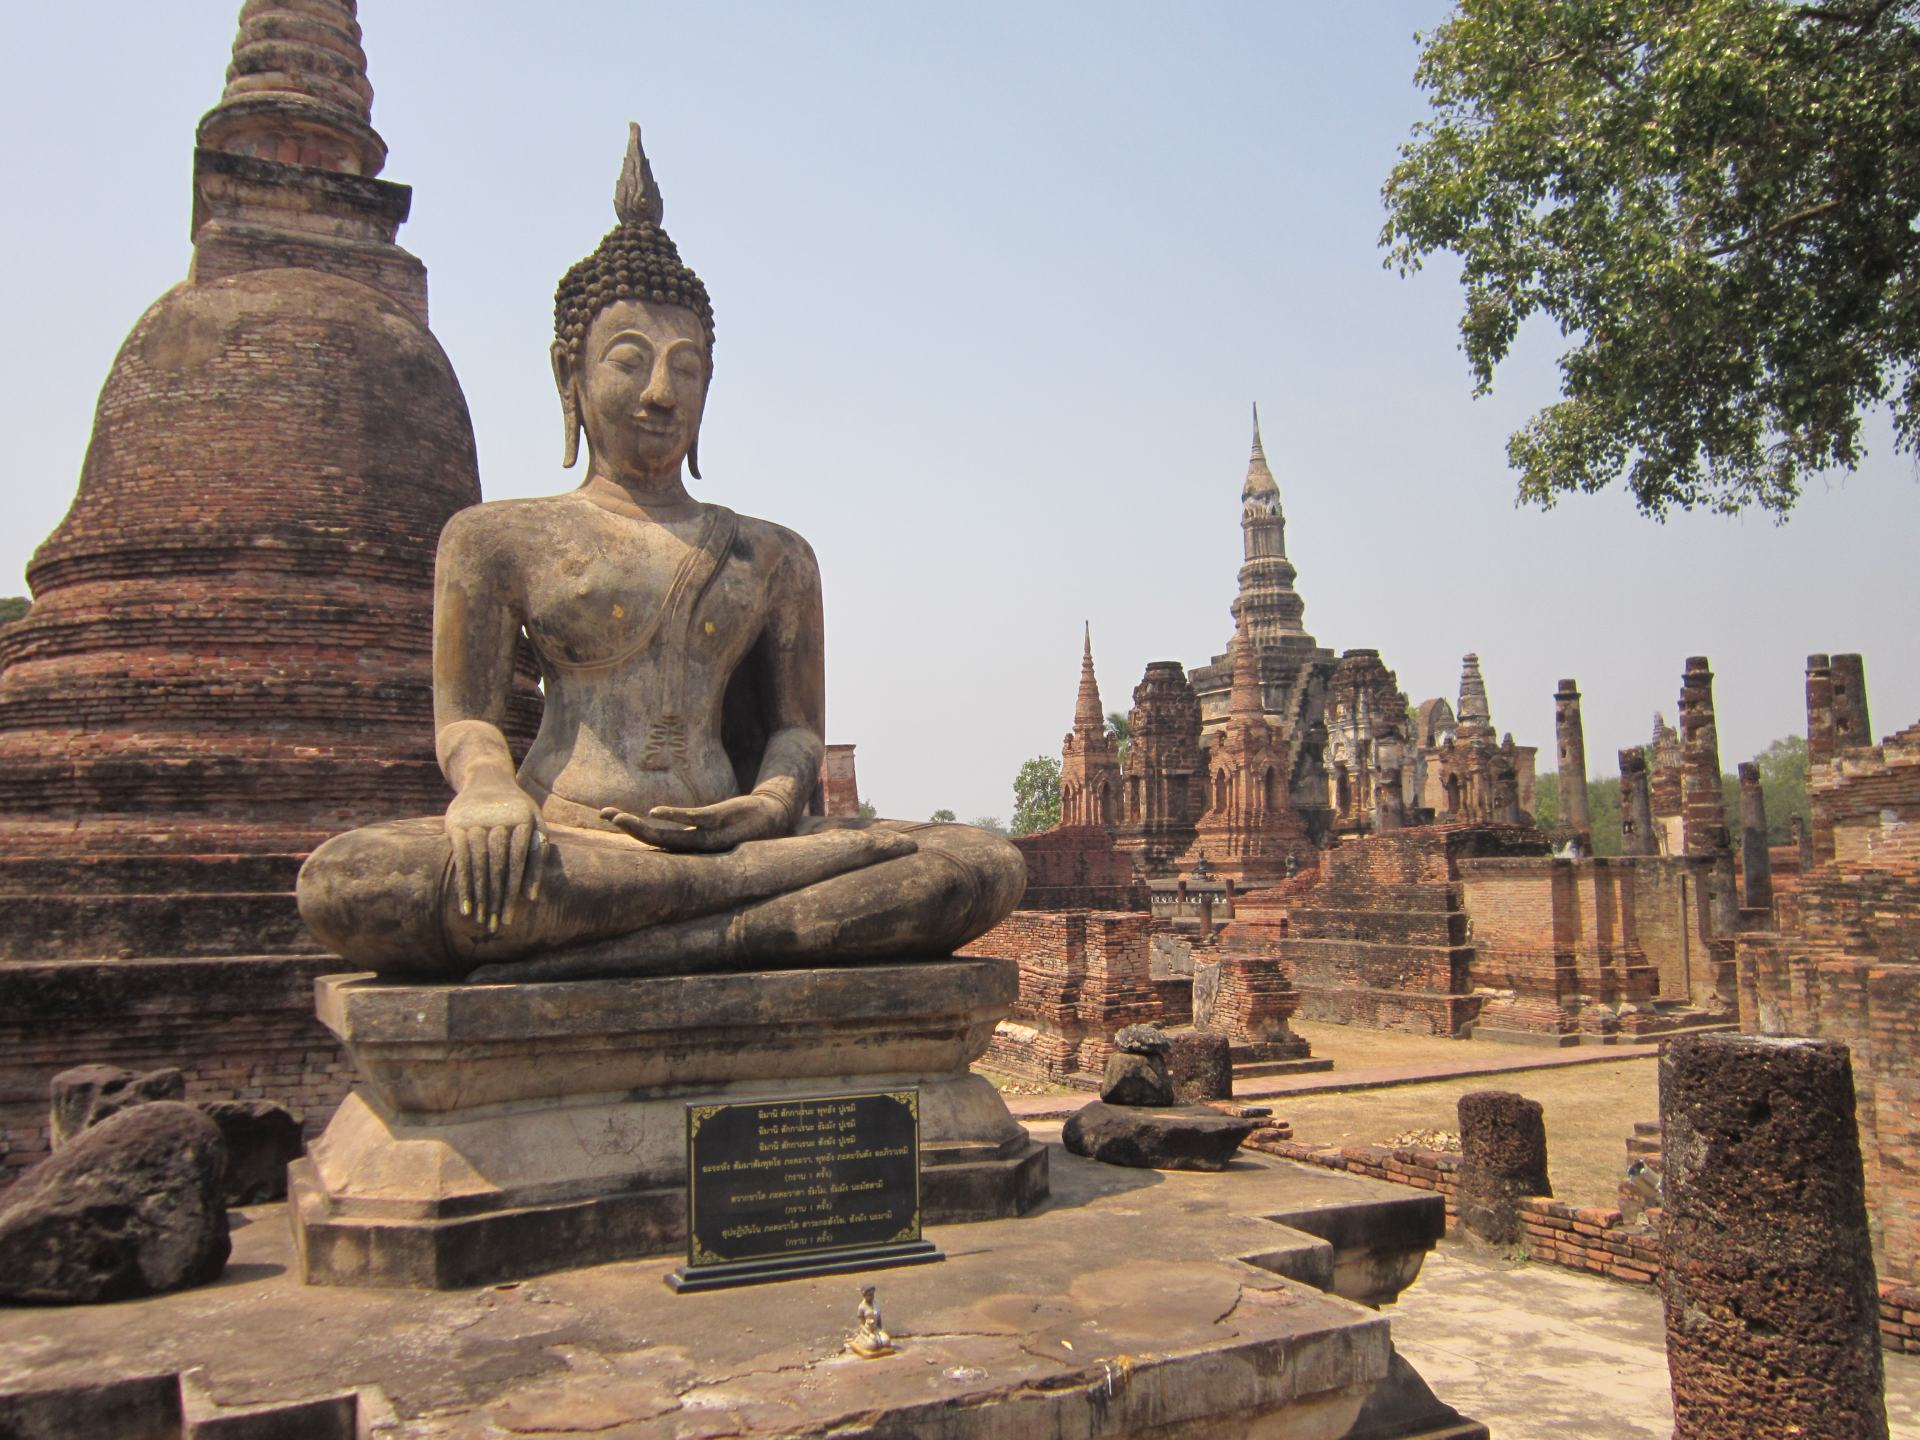 A large statue of a sitting Buddha in Sukhothai Historical Park, with other Buddhist style Southeast Asian temples and pillars around.